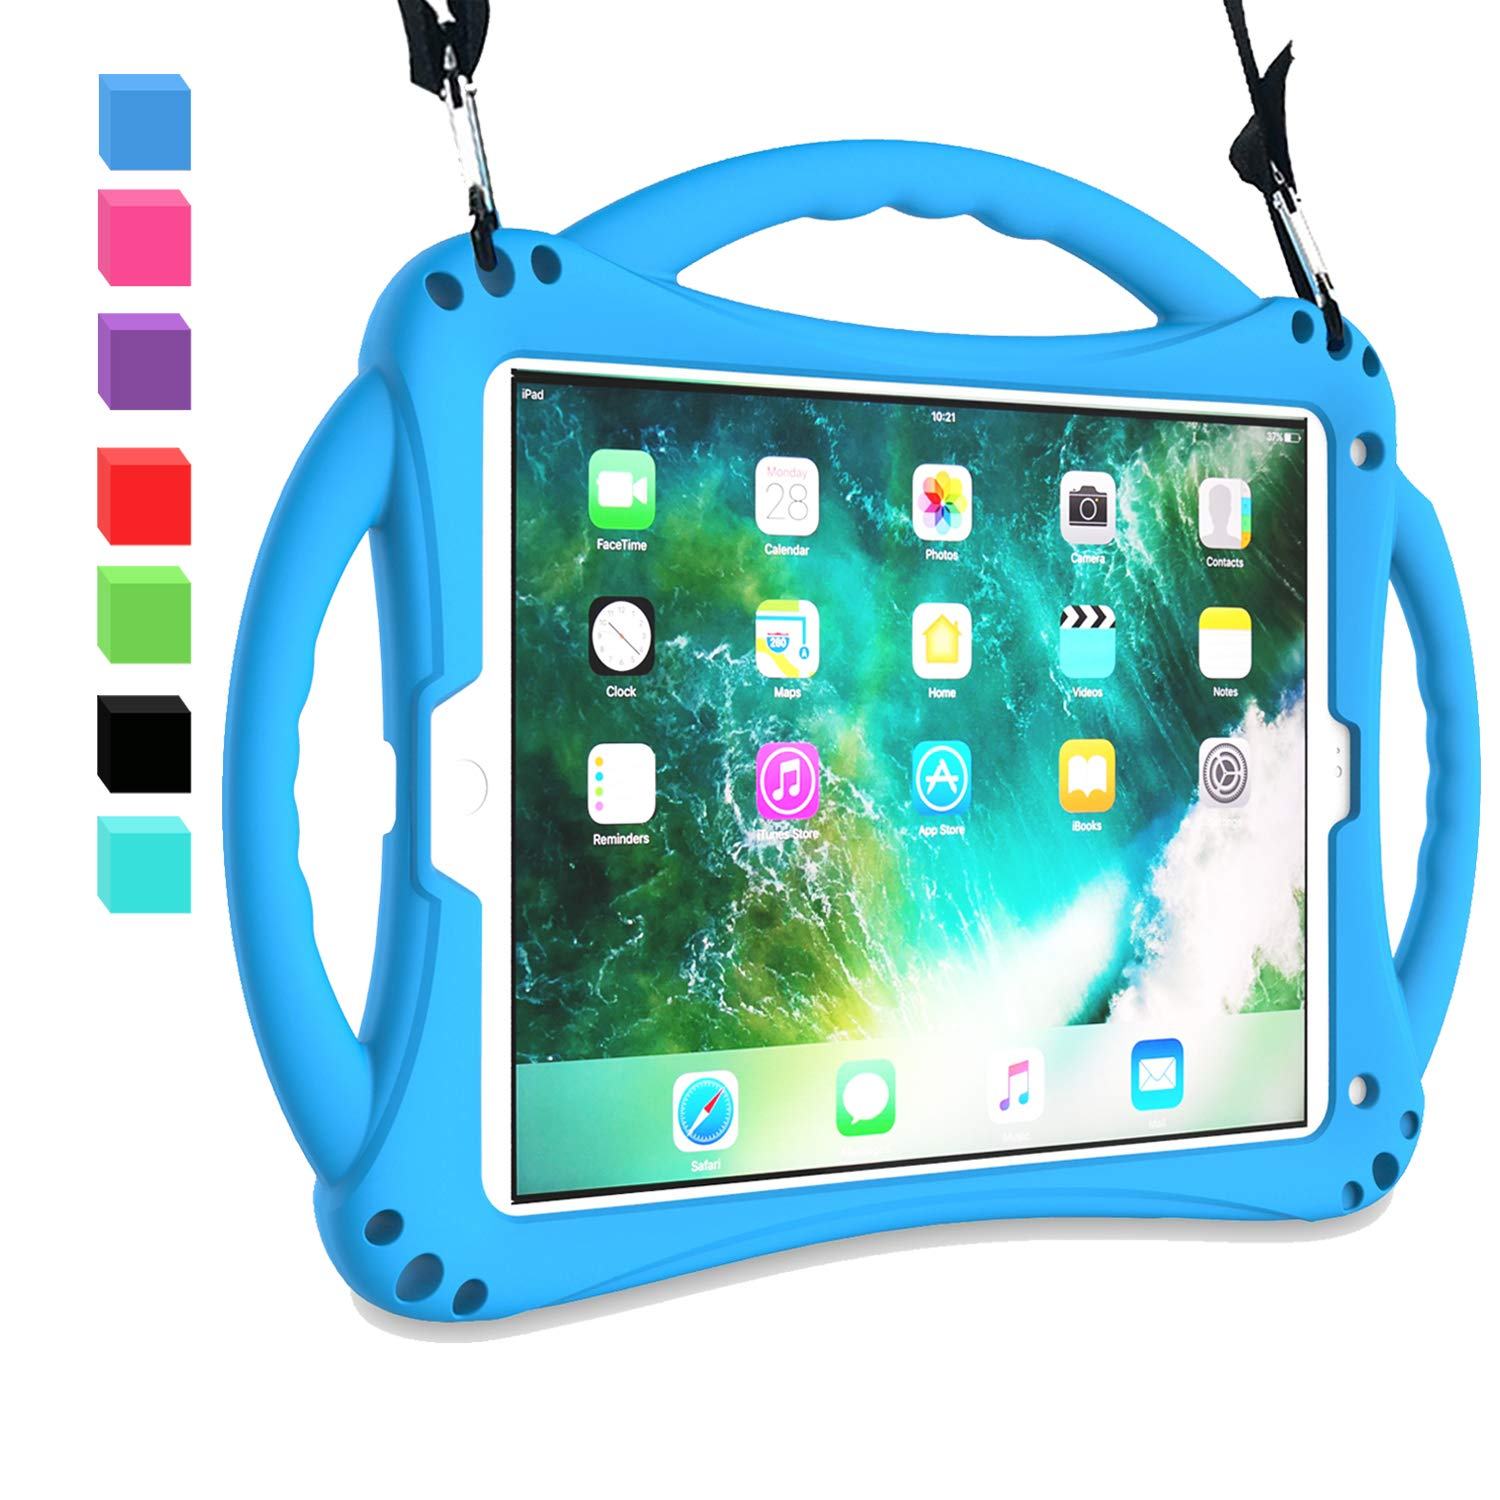 AVAWO New iPad 9.7 2018/2017 Case - Shockproof Silicone Handle Stand Kids Case with Shoulder Strap for Apple New iPad 9.7 inch 5th / 6th Previous Generation and iPad Air - Blue